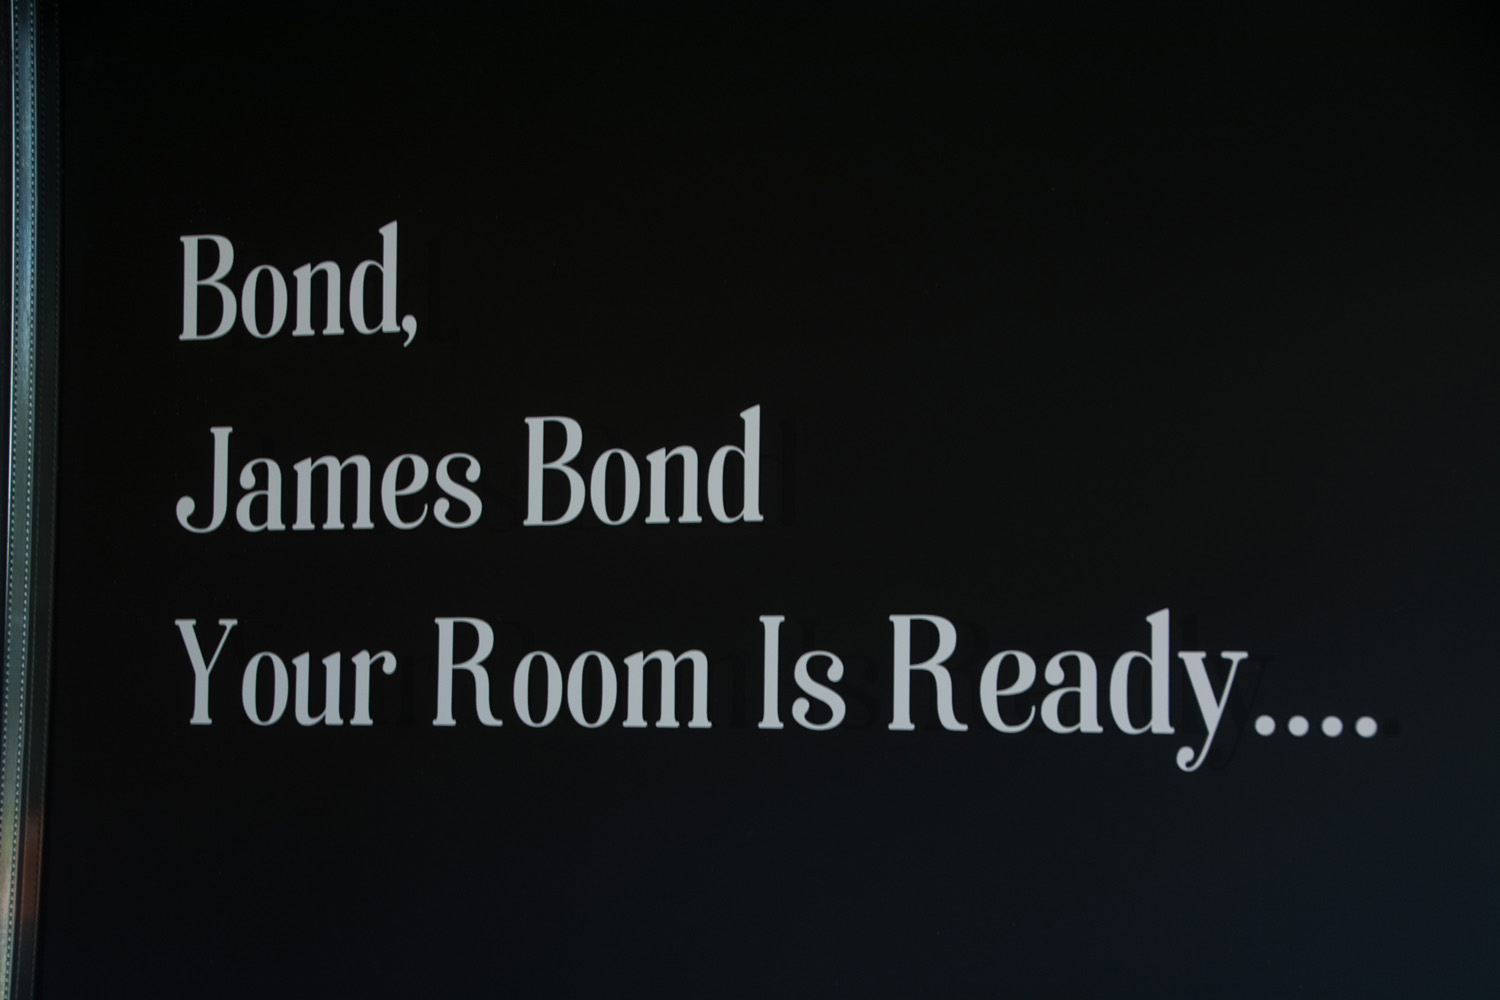 Bond, James Bond. Your Room is Ready